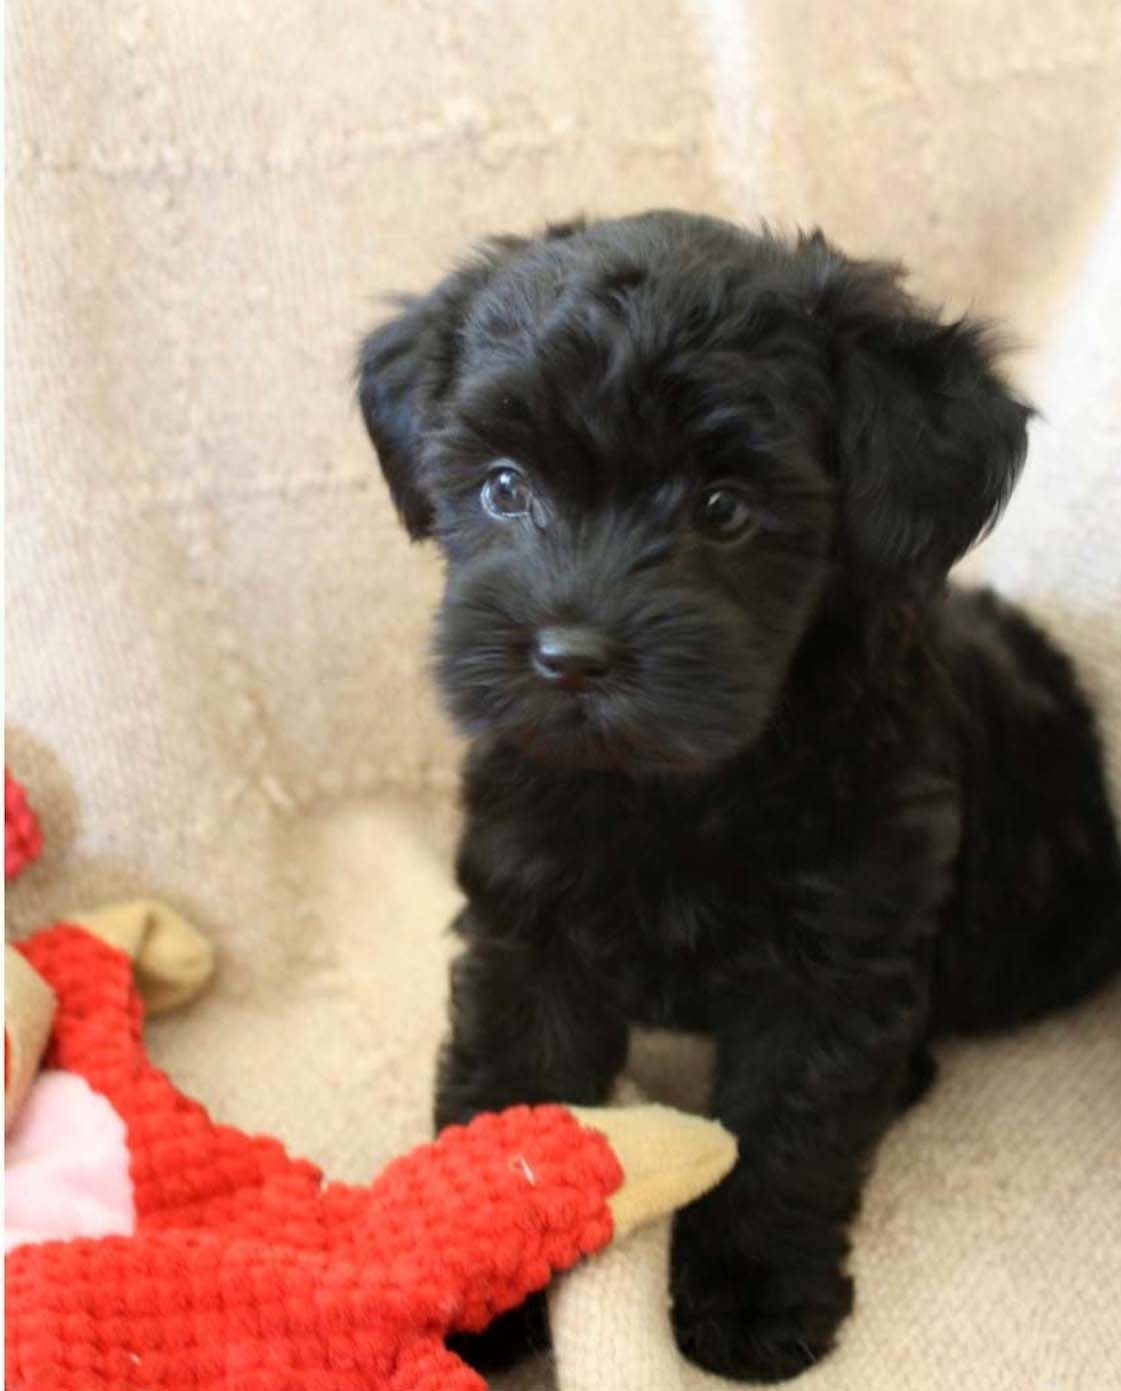 Platinum tea cup poodles for sale dog breeds picture - Black Mini Toy Poodle Childrens Toy Wallpaper